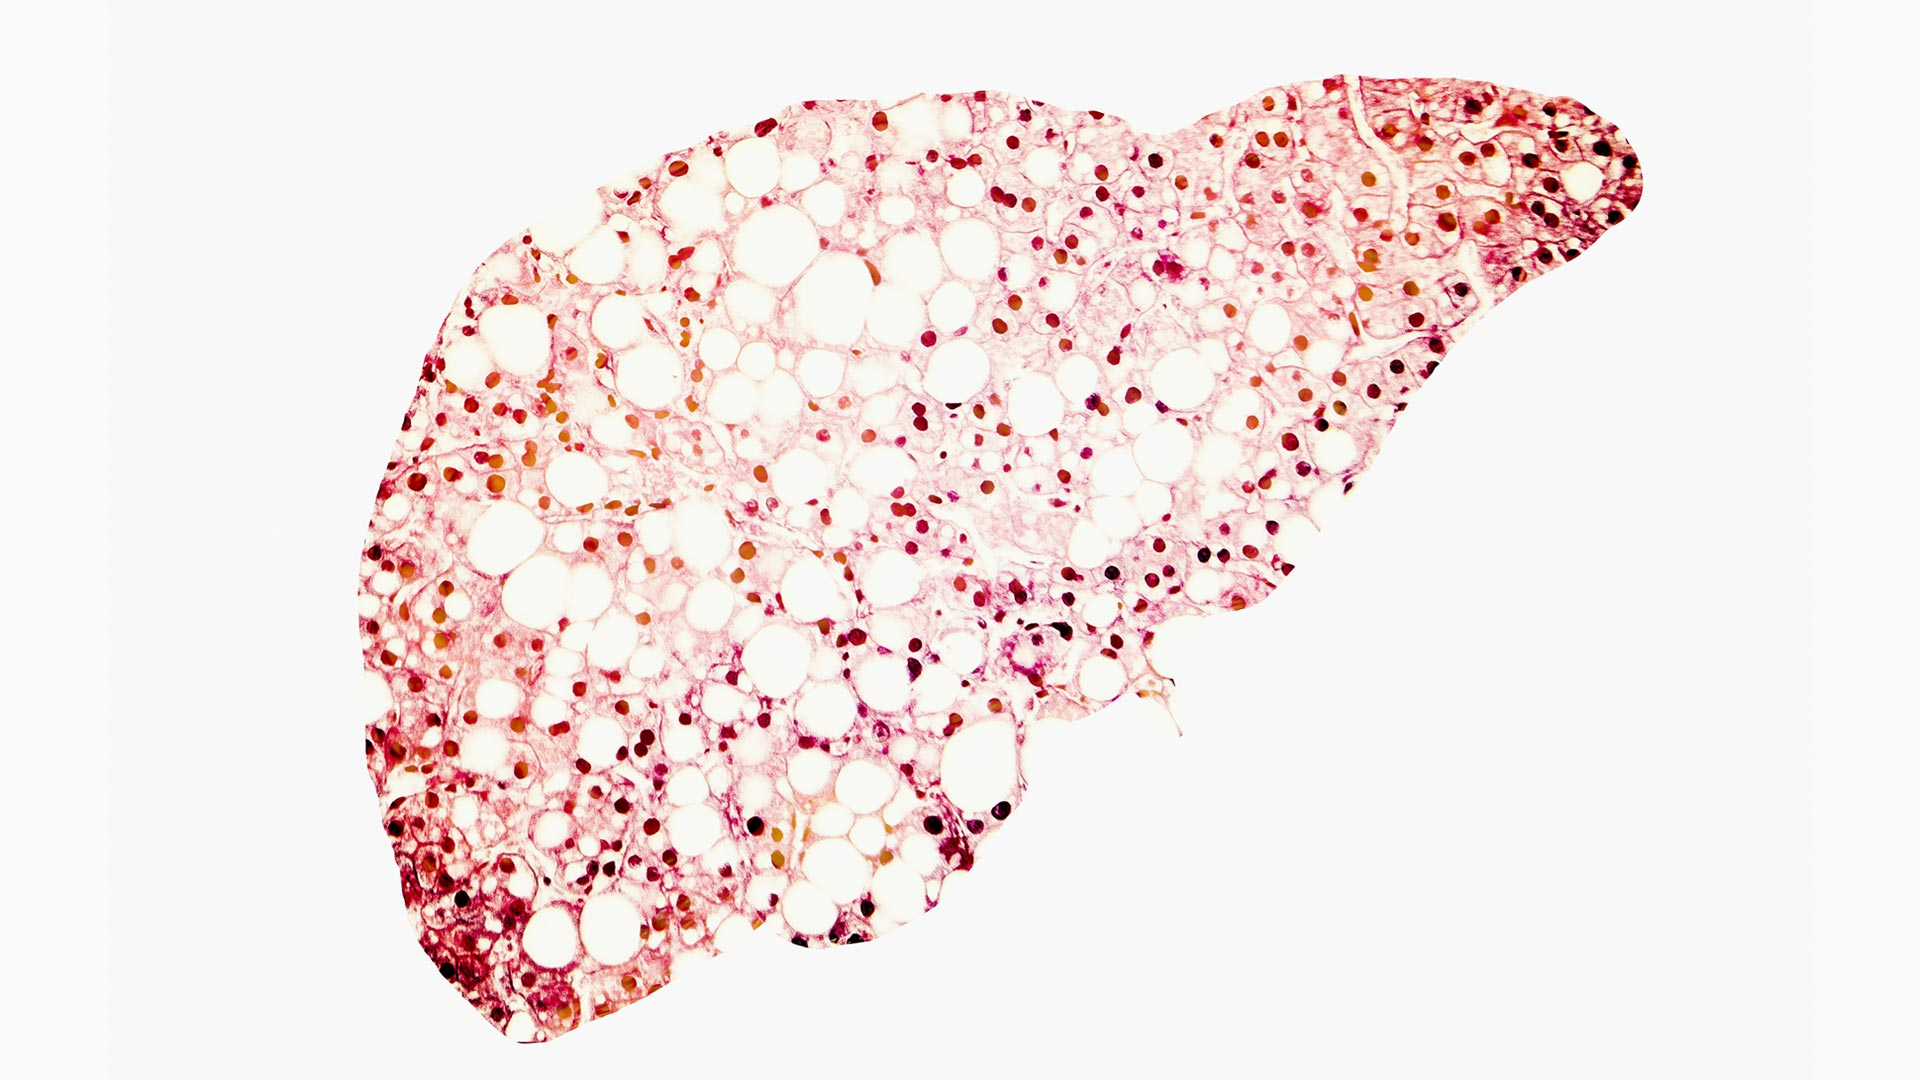 Preventing Liver Disease